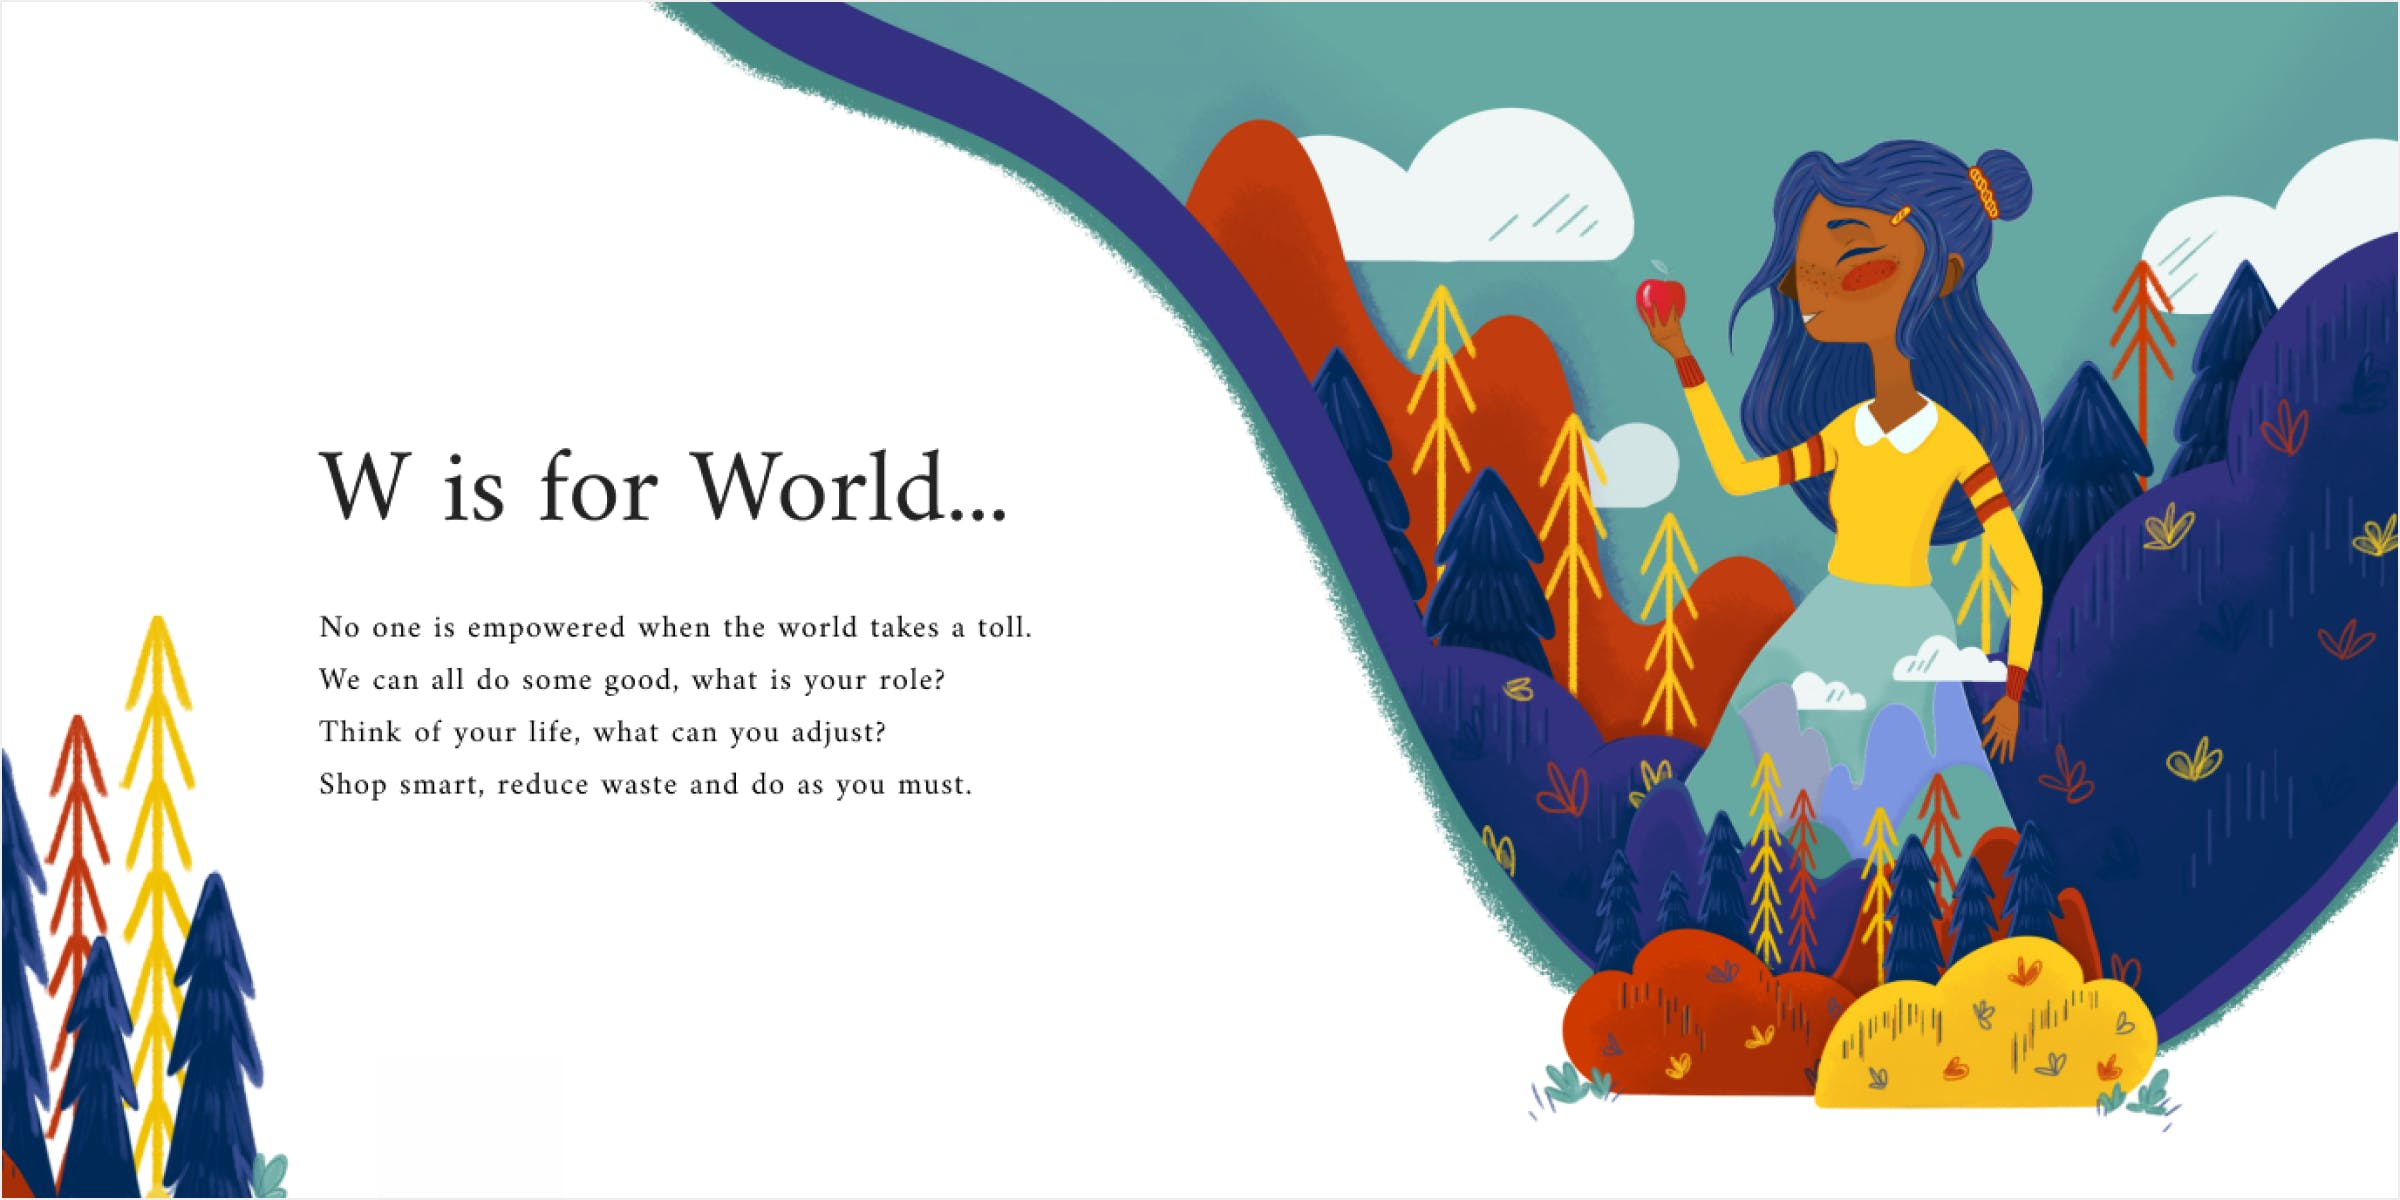 Image of World Spread. An image of a girl eating an apple and the world around her.